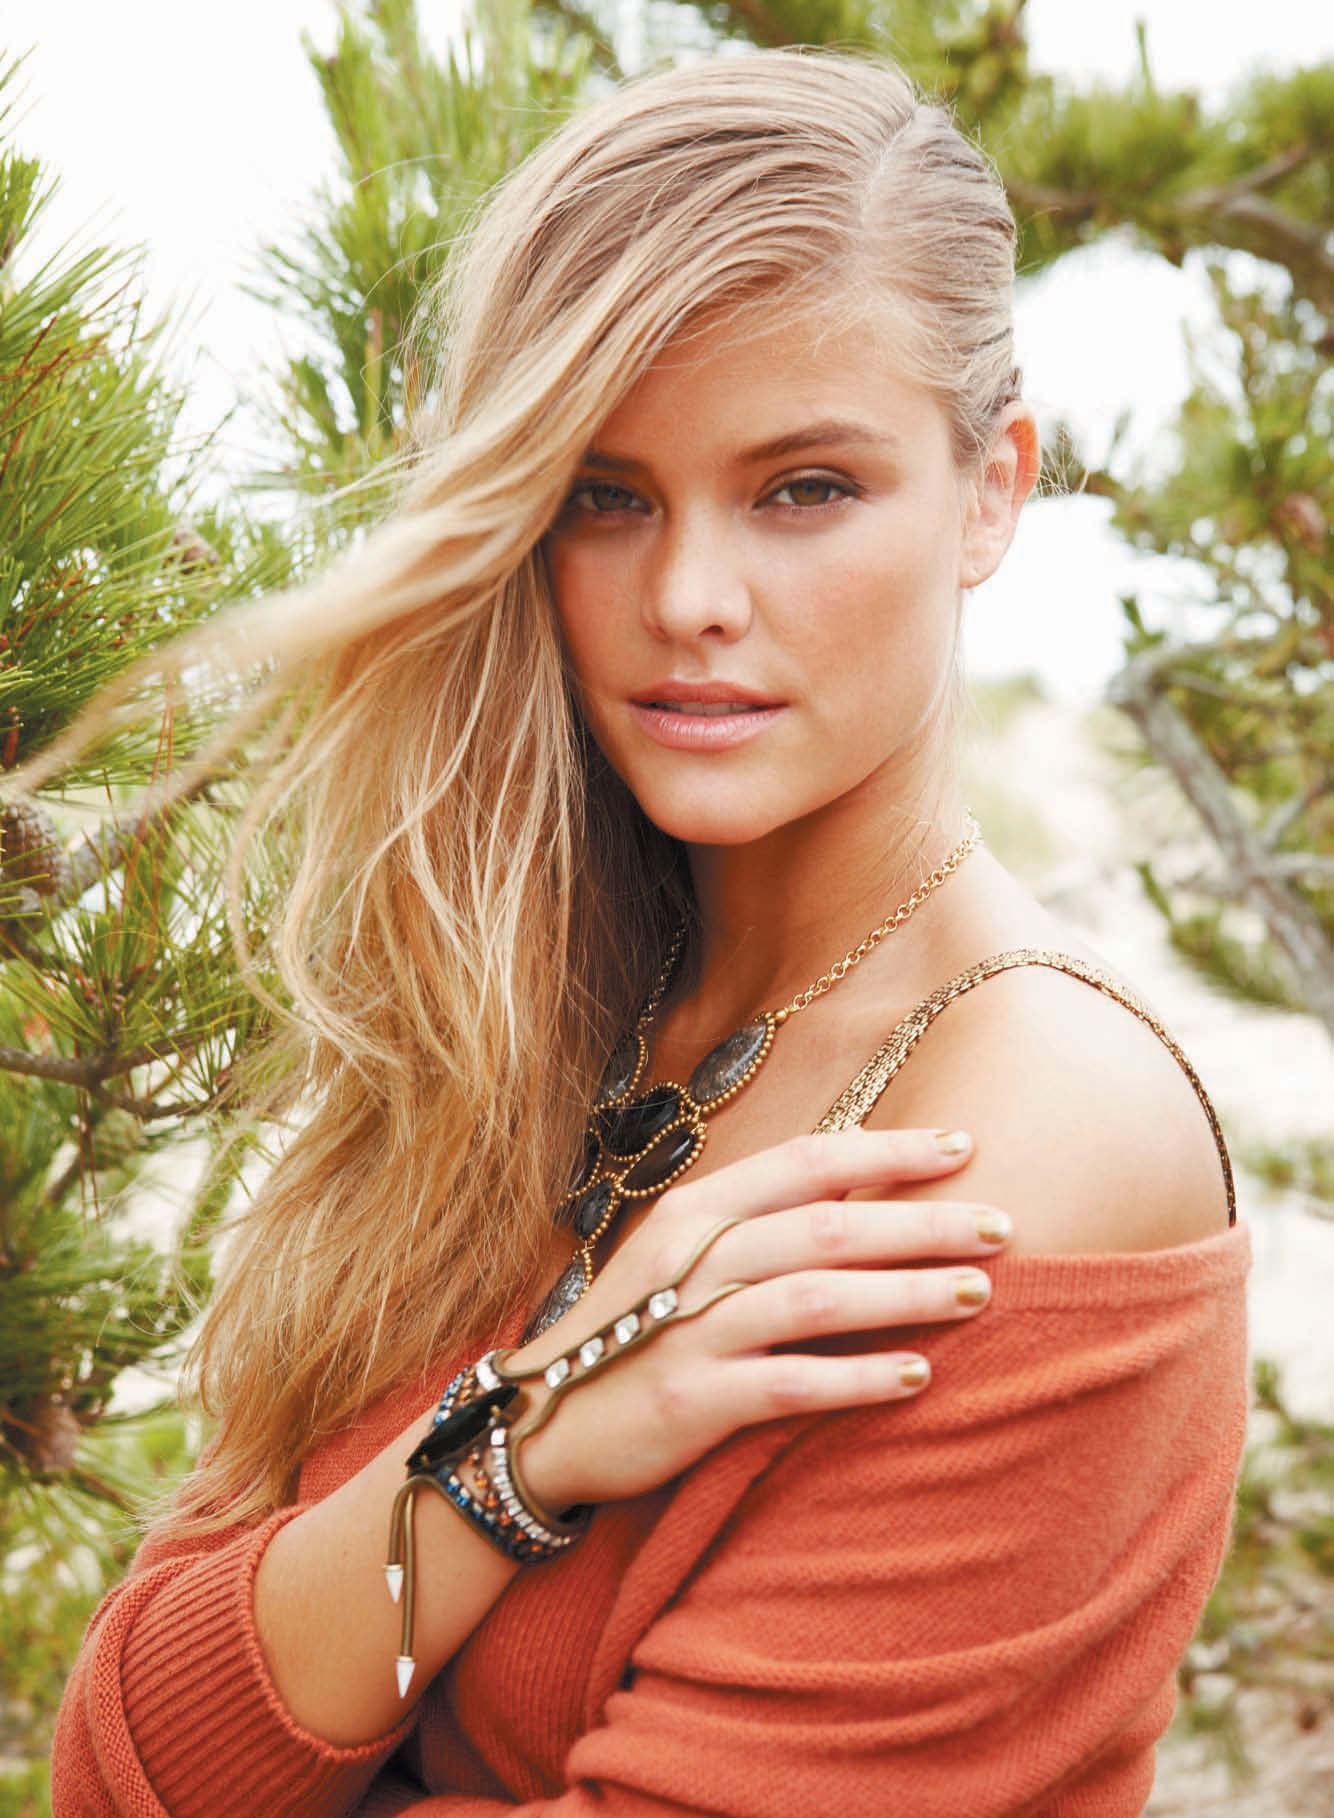 nina-agdal-cosmopolitan-middle-east-november-2014-03